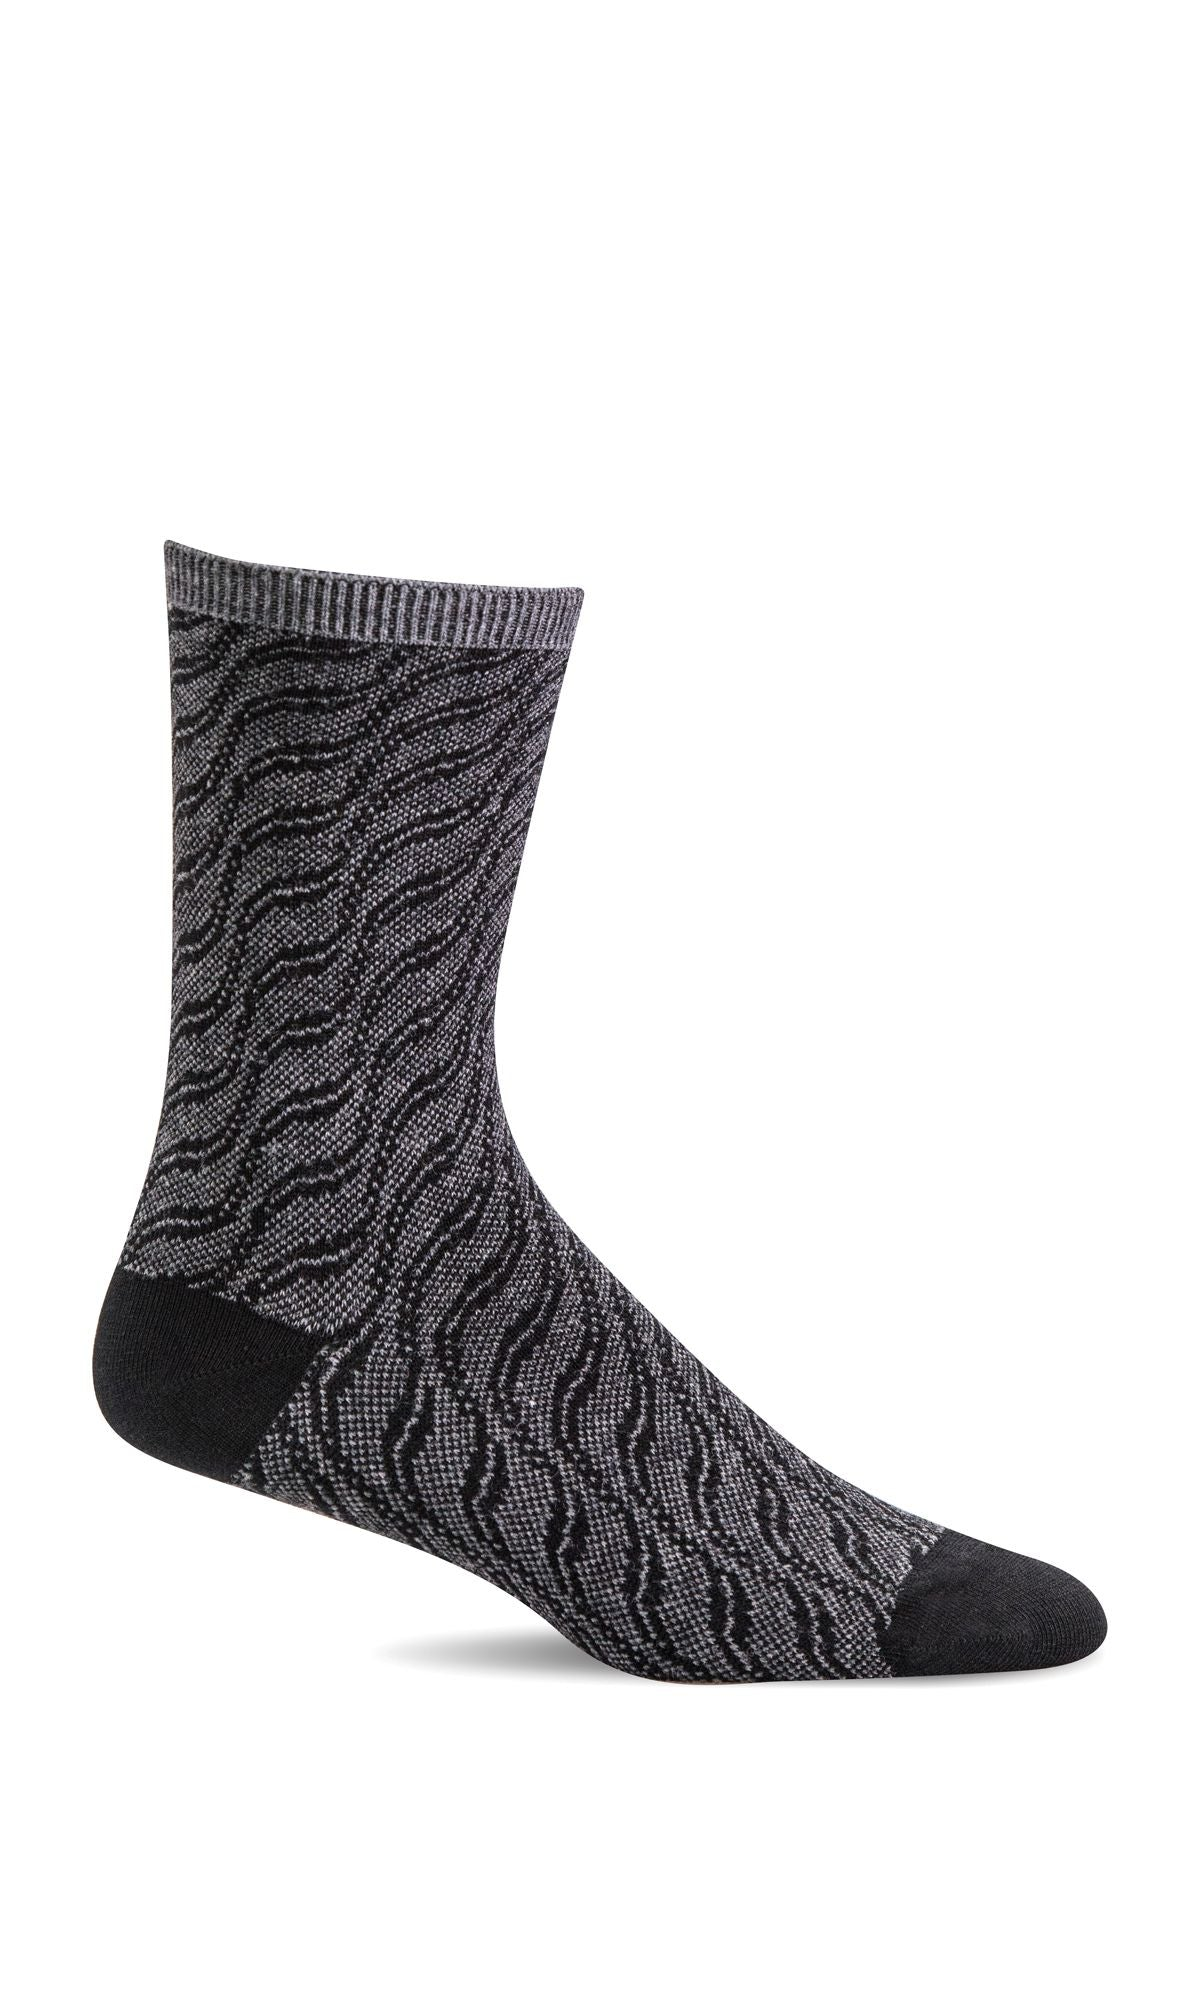 Sockwell - Women's Essential Comfort - Second Wave LD142W